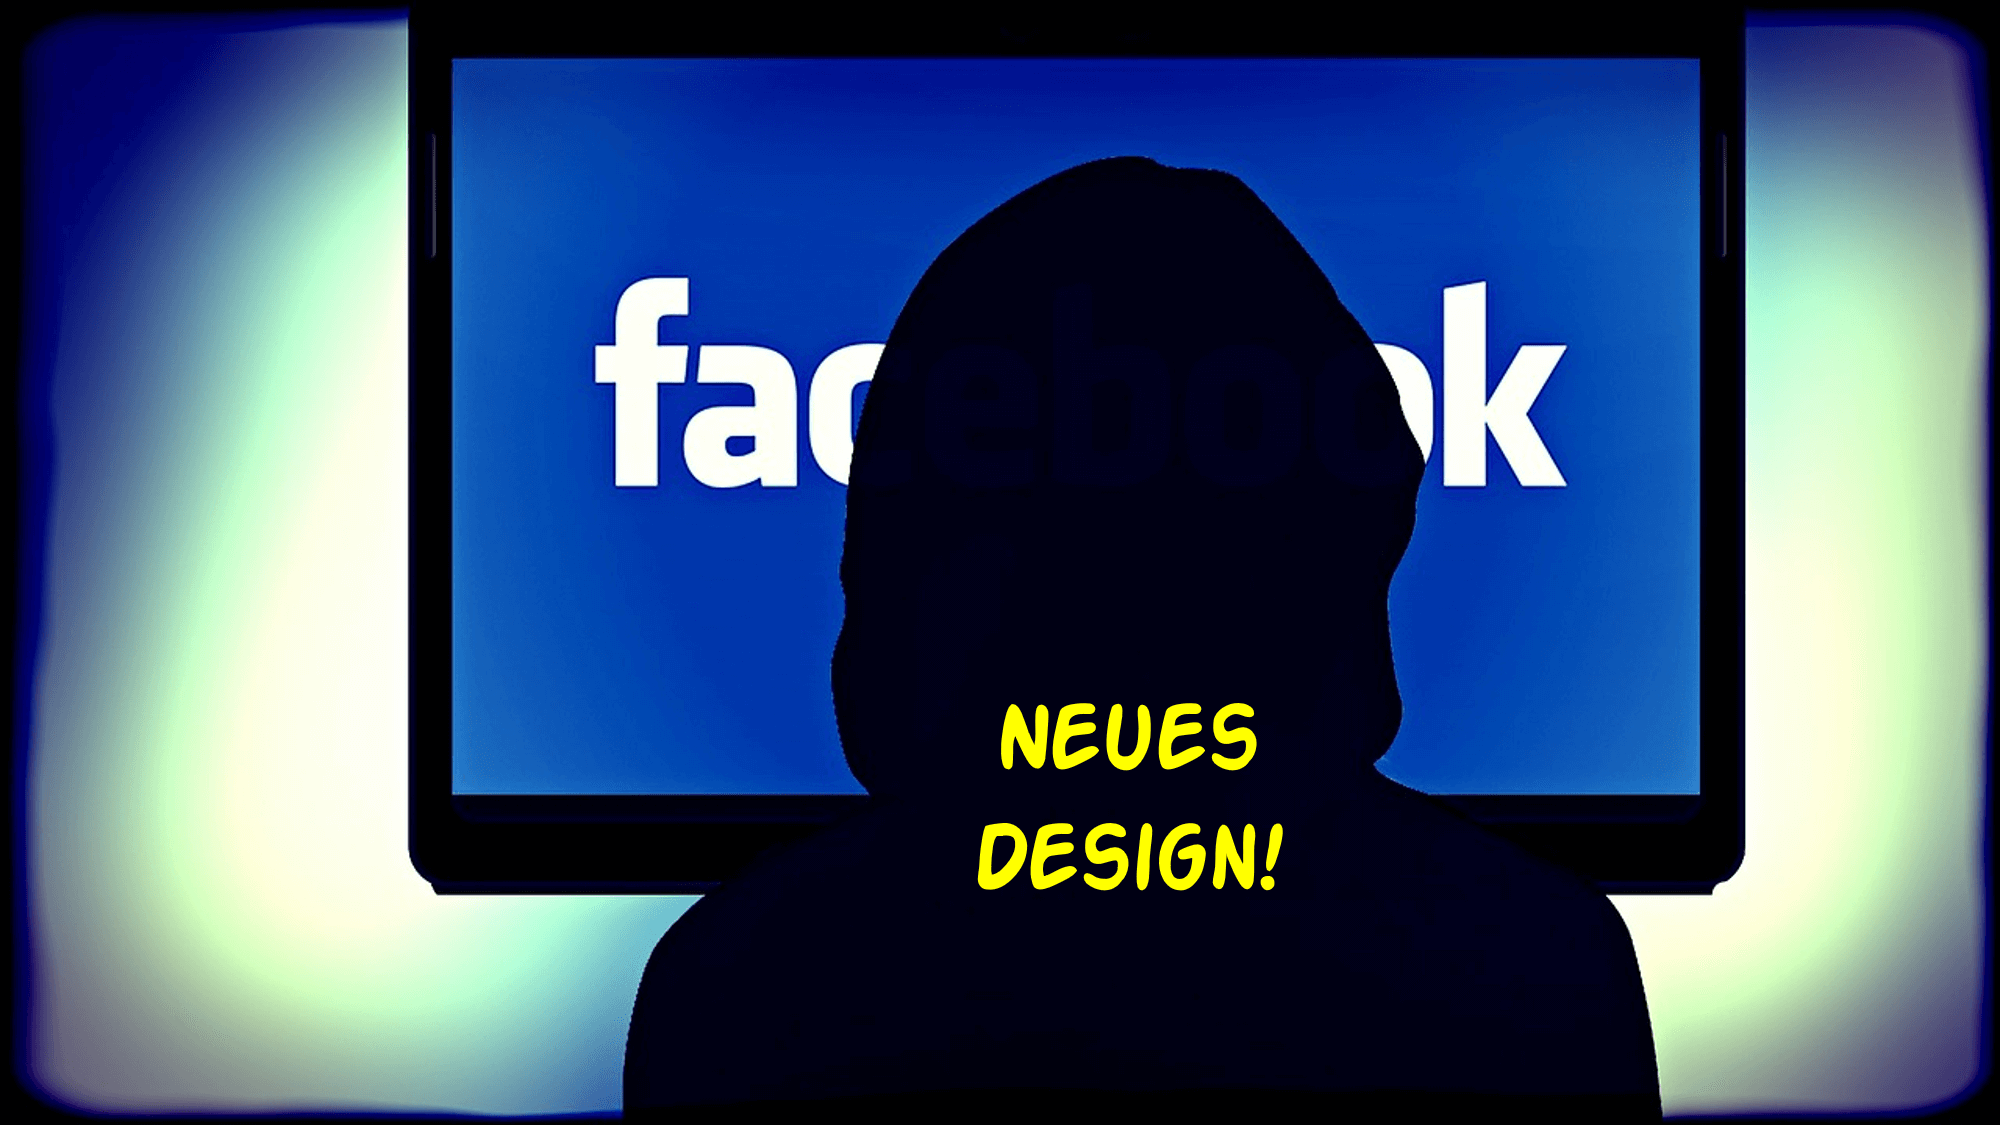 FB Neues Design